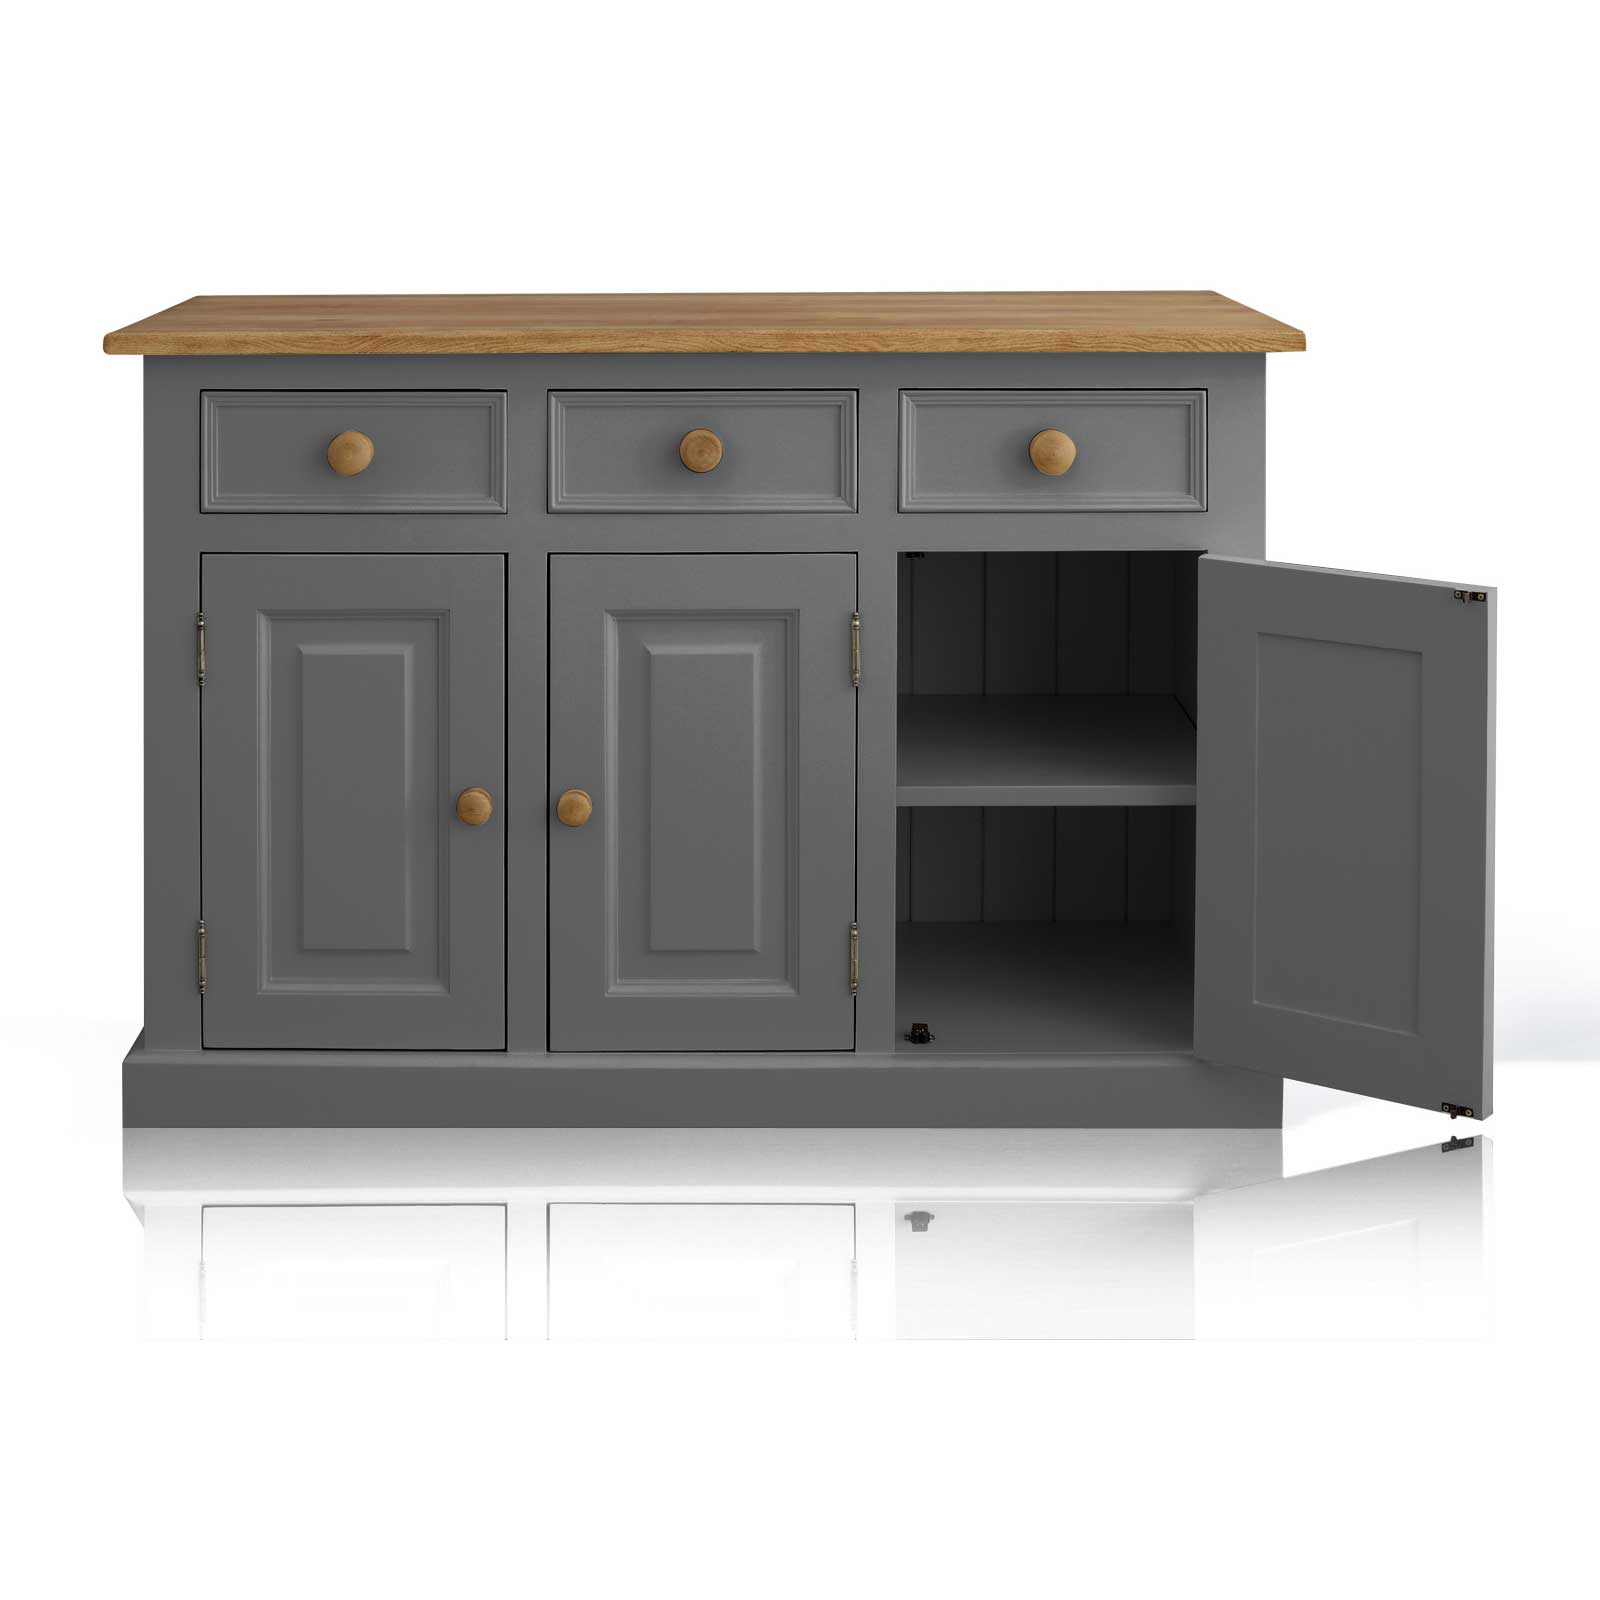 Soho Dark Grey Painted Argyll 3 Door 3 Drawer Dresser_2